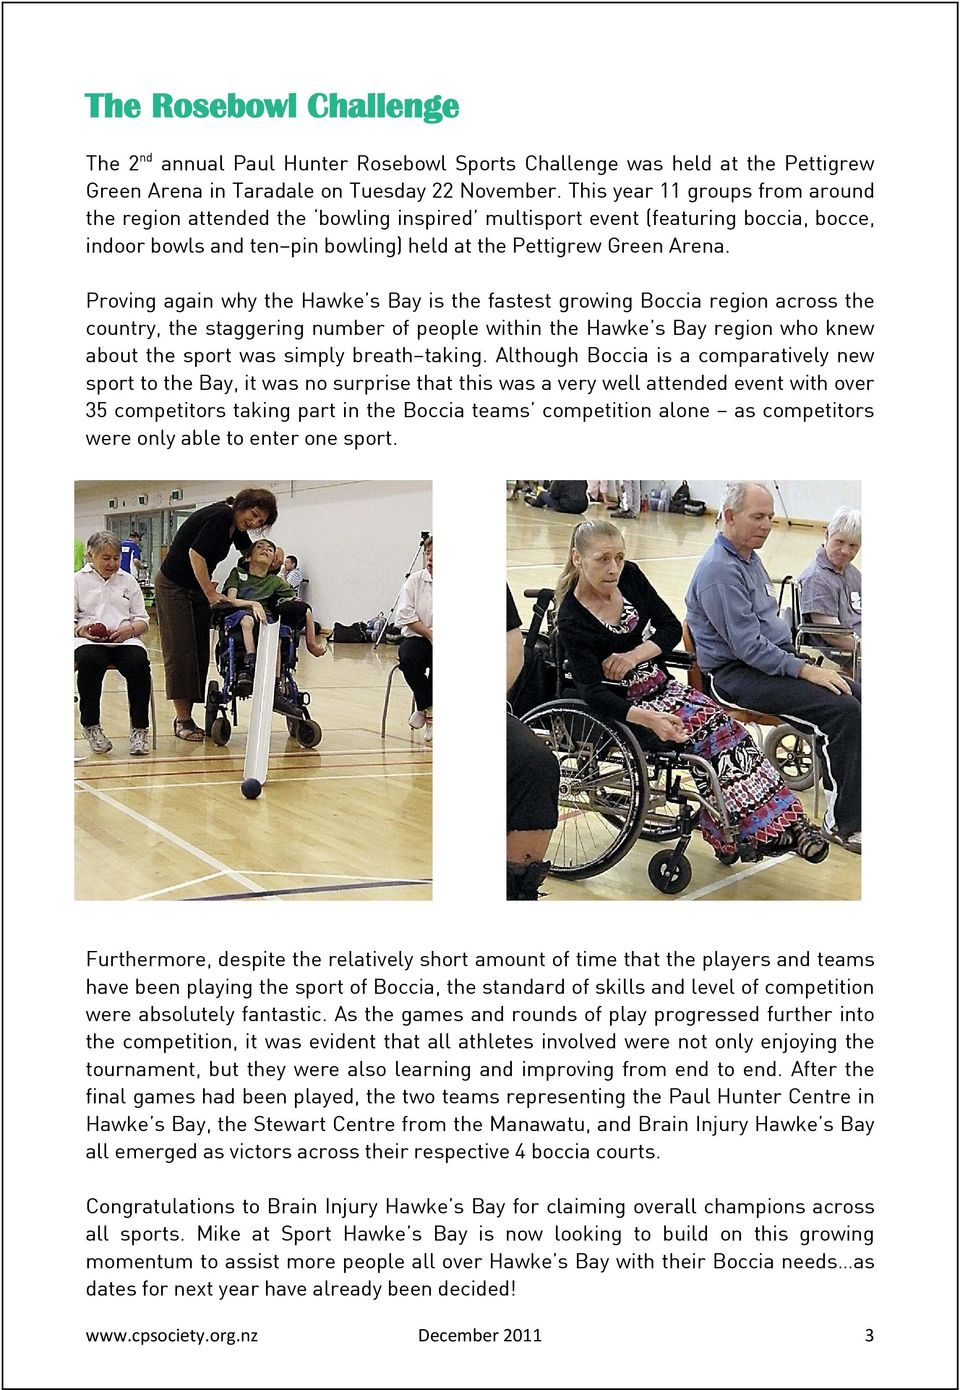 Proving again why the Hawke s Bay is the fastest growing Boccia region across the country, the staggering number of people within the Hawke s Bay region who knew about the sport was simply